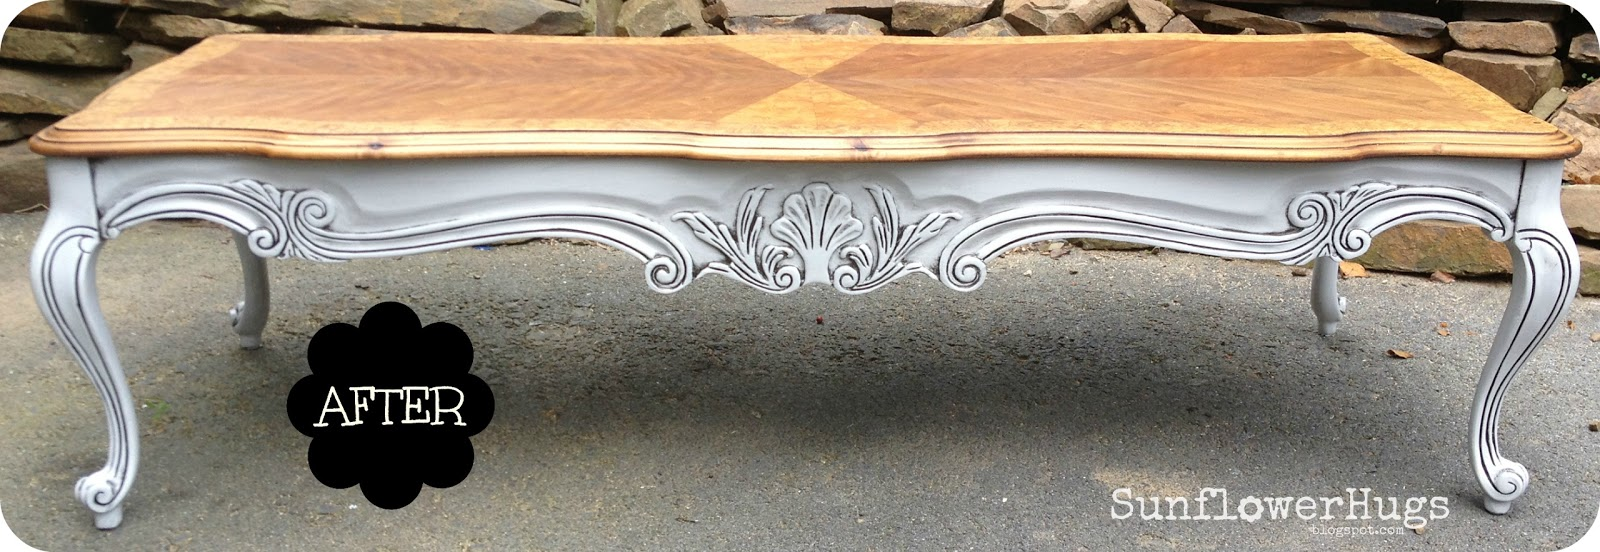 5u0027 Long French Country Coffee Table